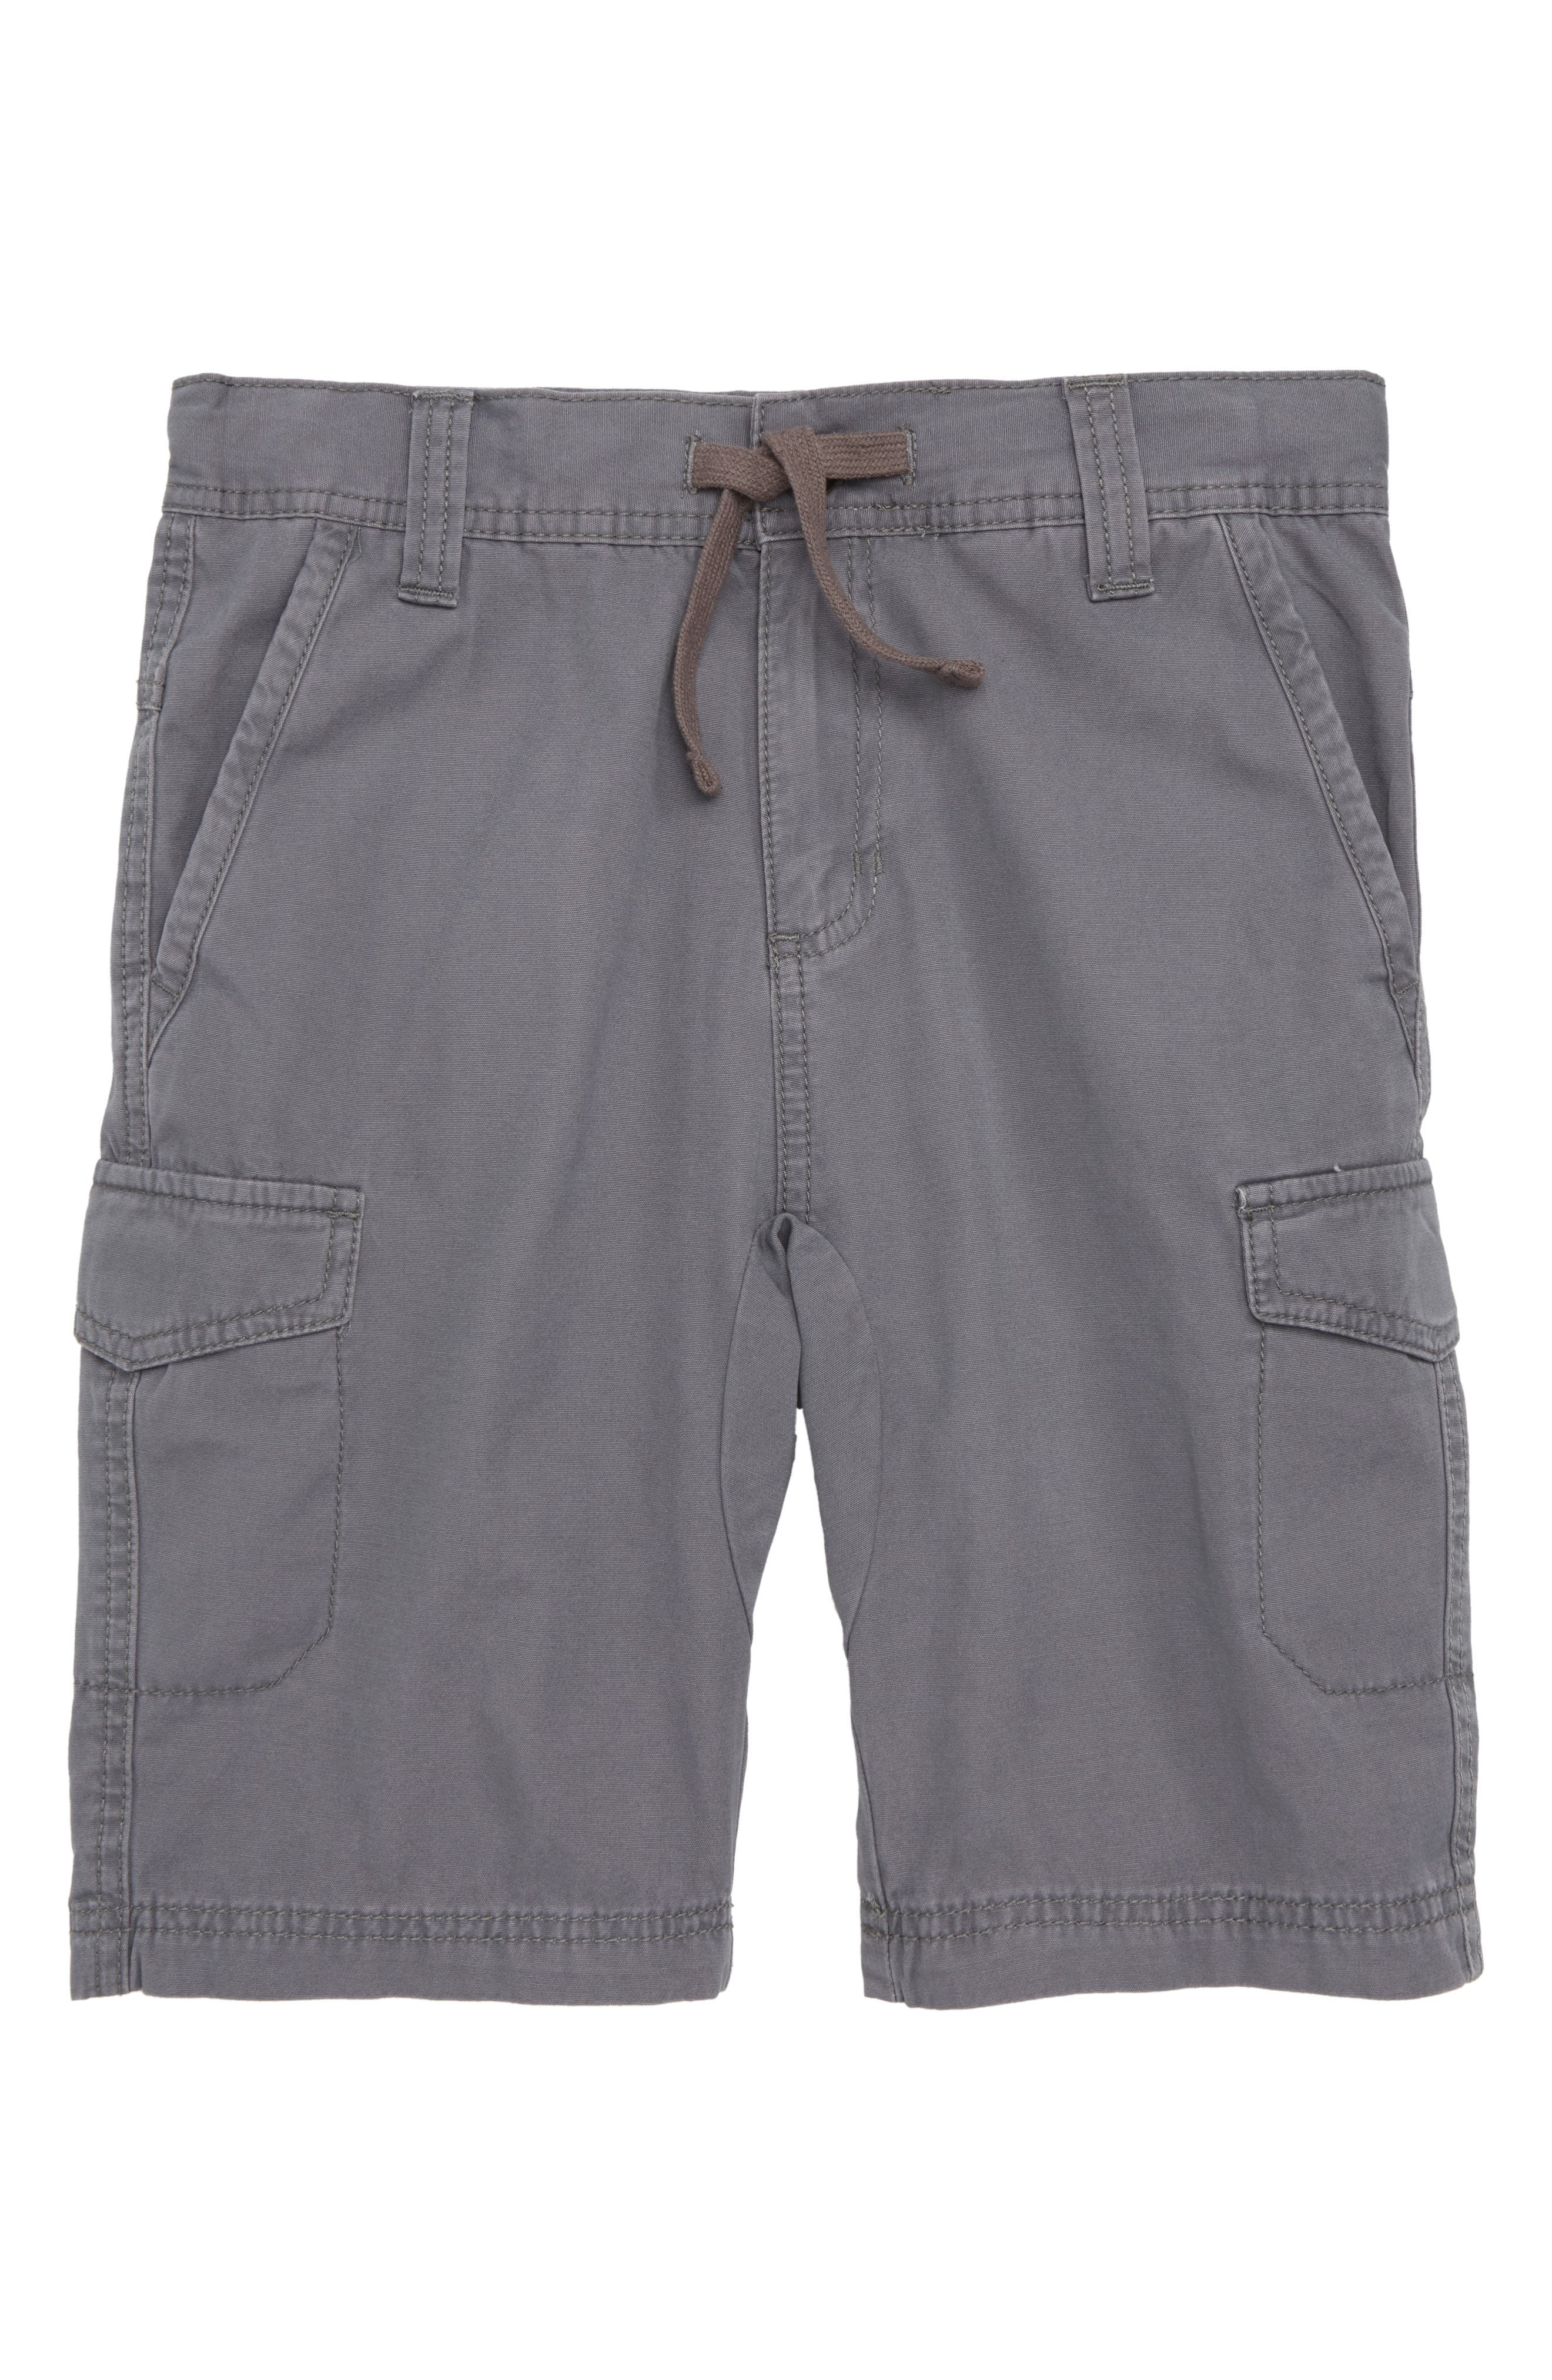 Utility Shorts,                         Main,                         color, 021